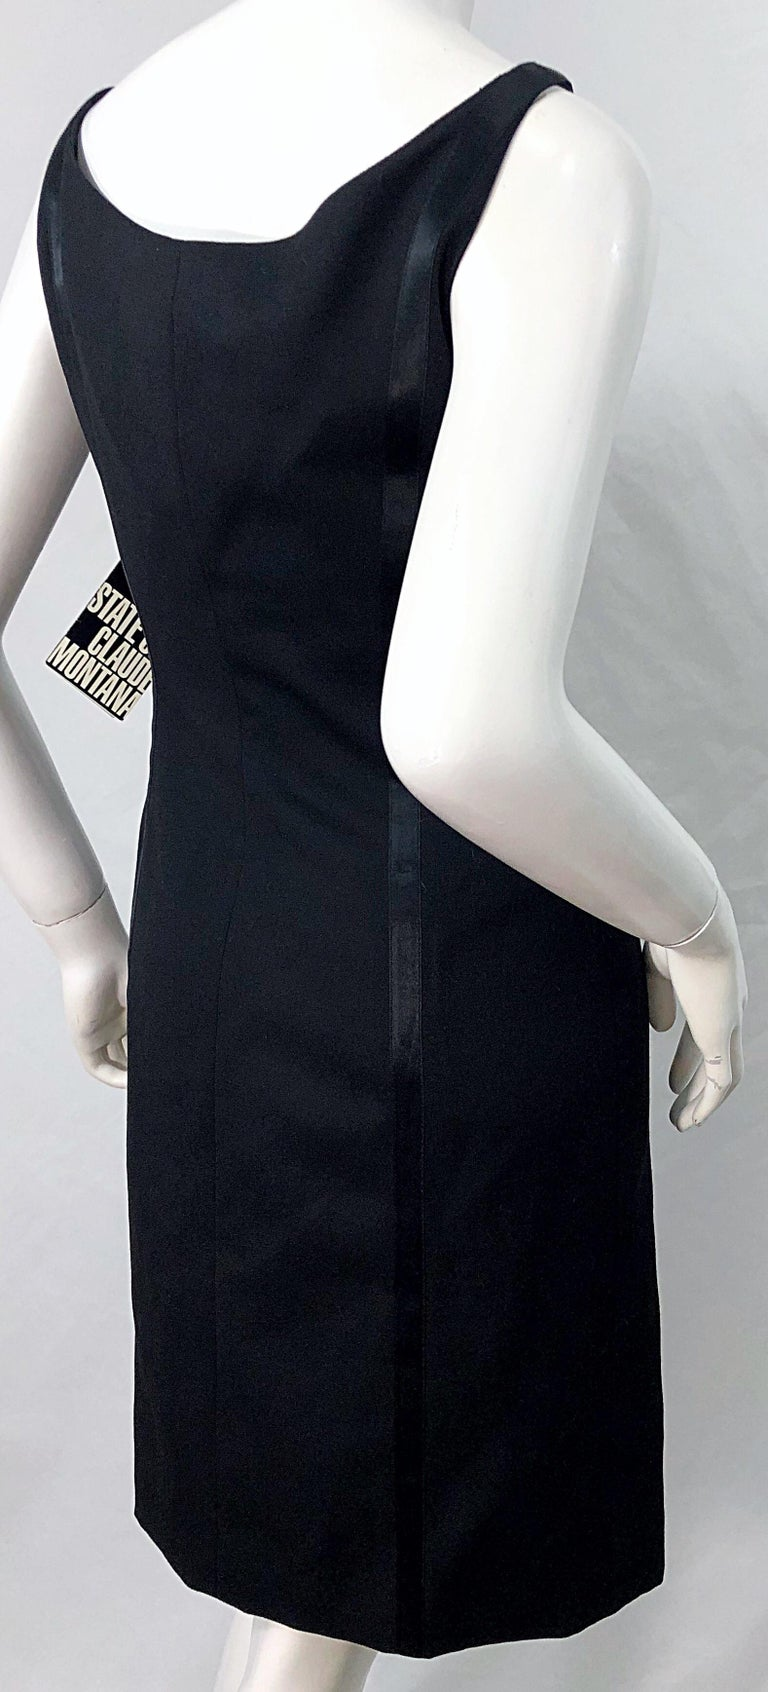 NWT 1990s Claude Montana Size 6 Vintage 90s Sleeveless Little Black Dress  For Sale 7